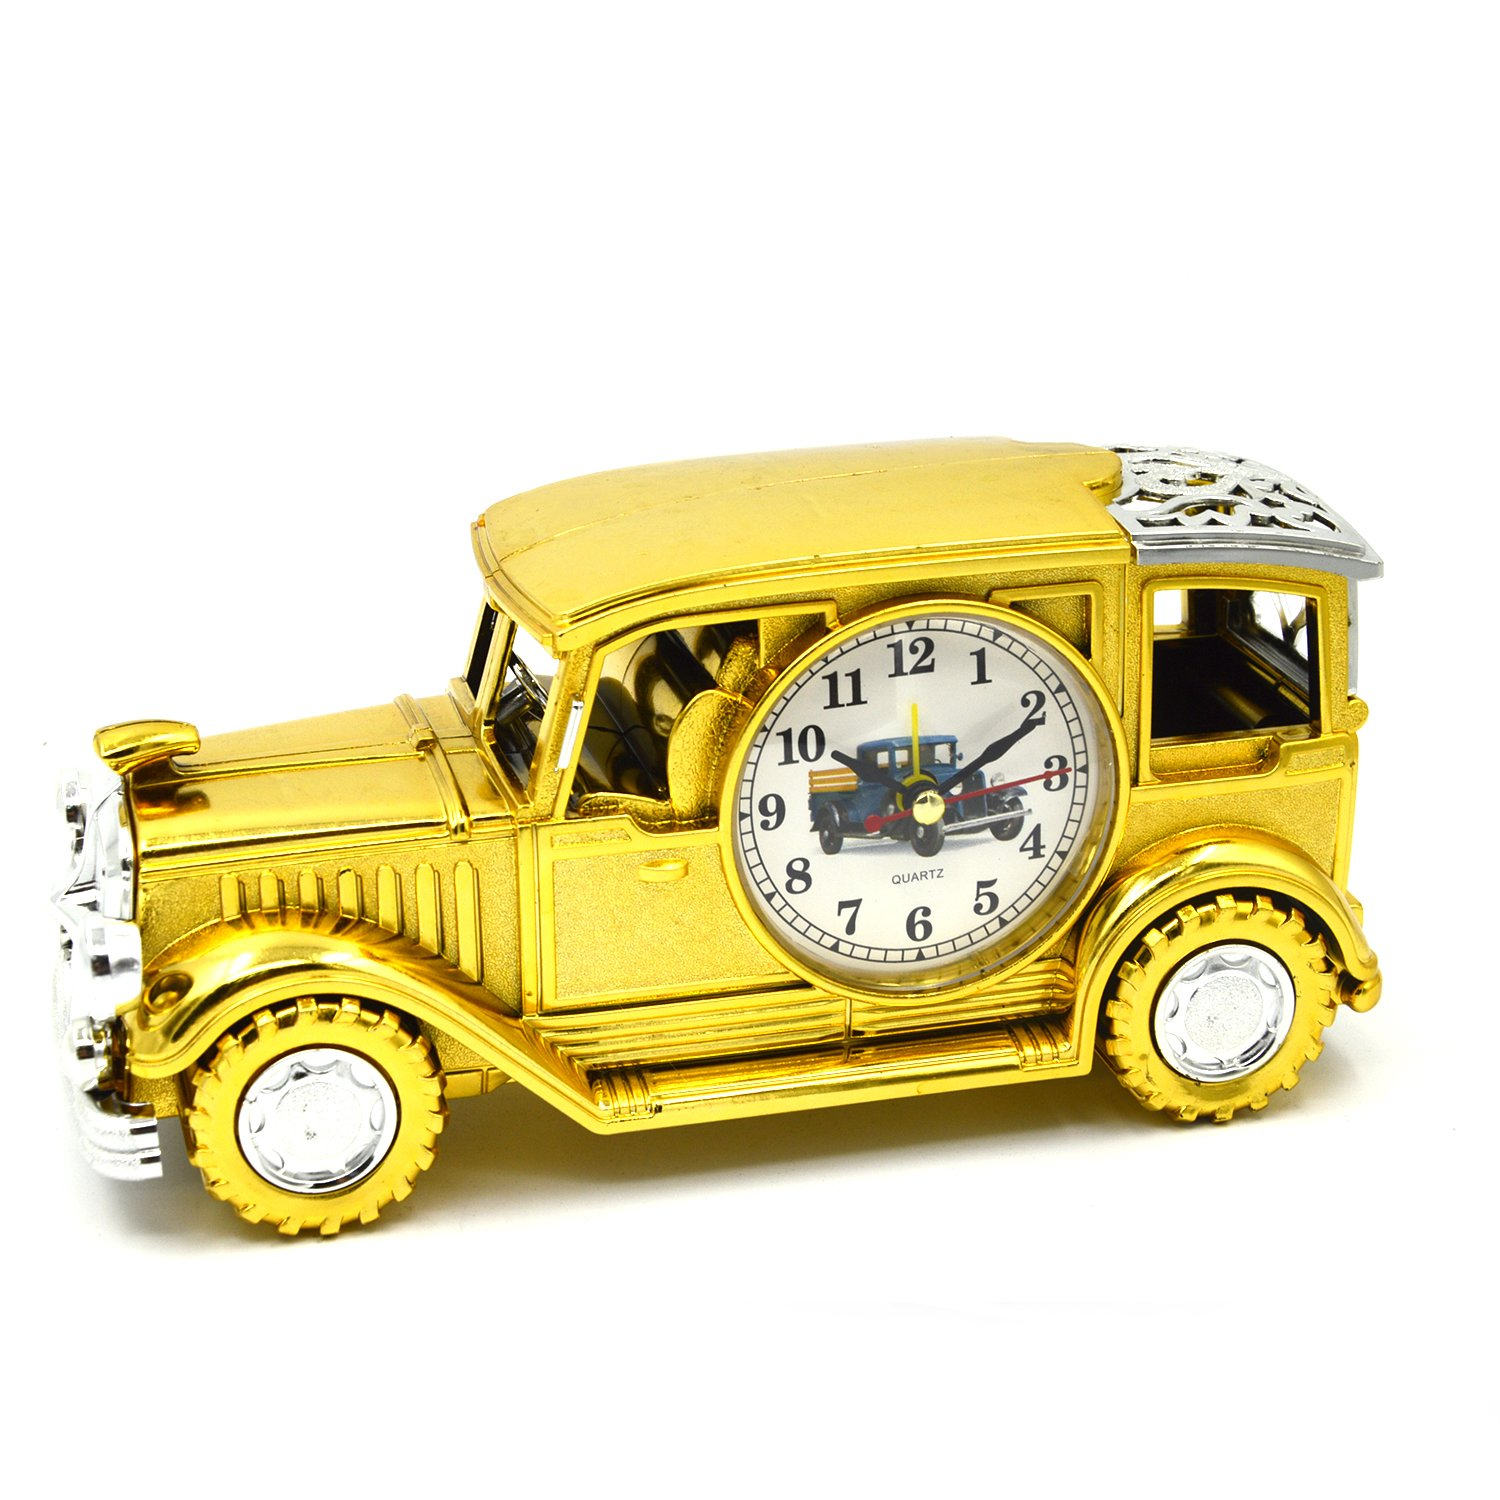 Classic Vintage Car Model Table Desk Alarm Clock Time Clock with Pen Pencil Holder Mishiner